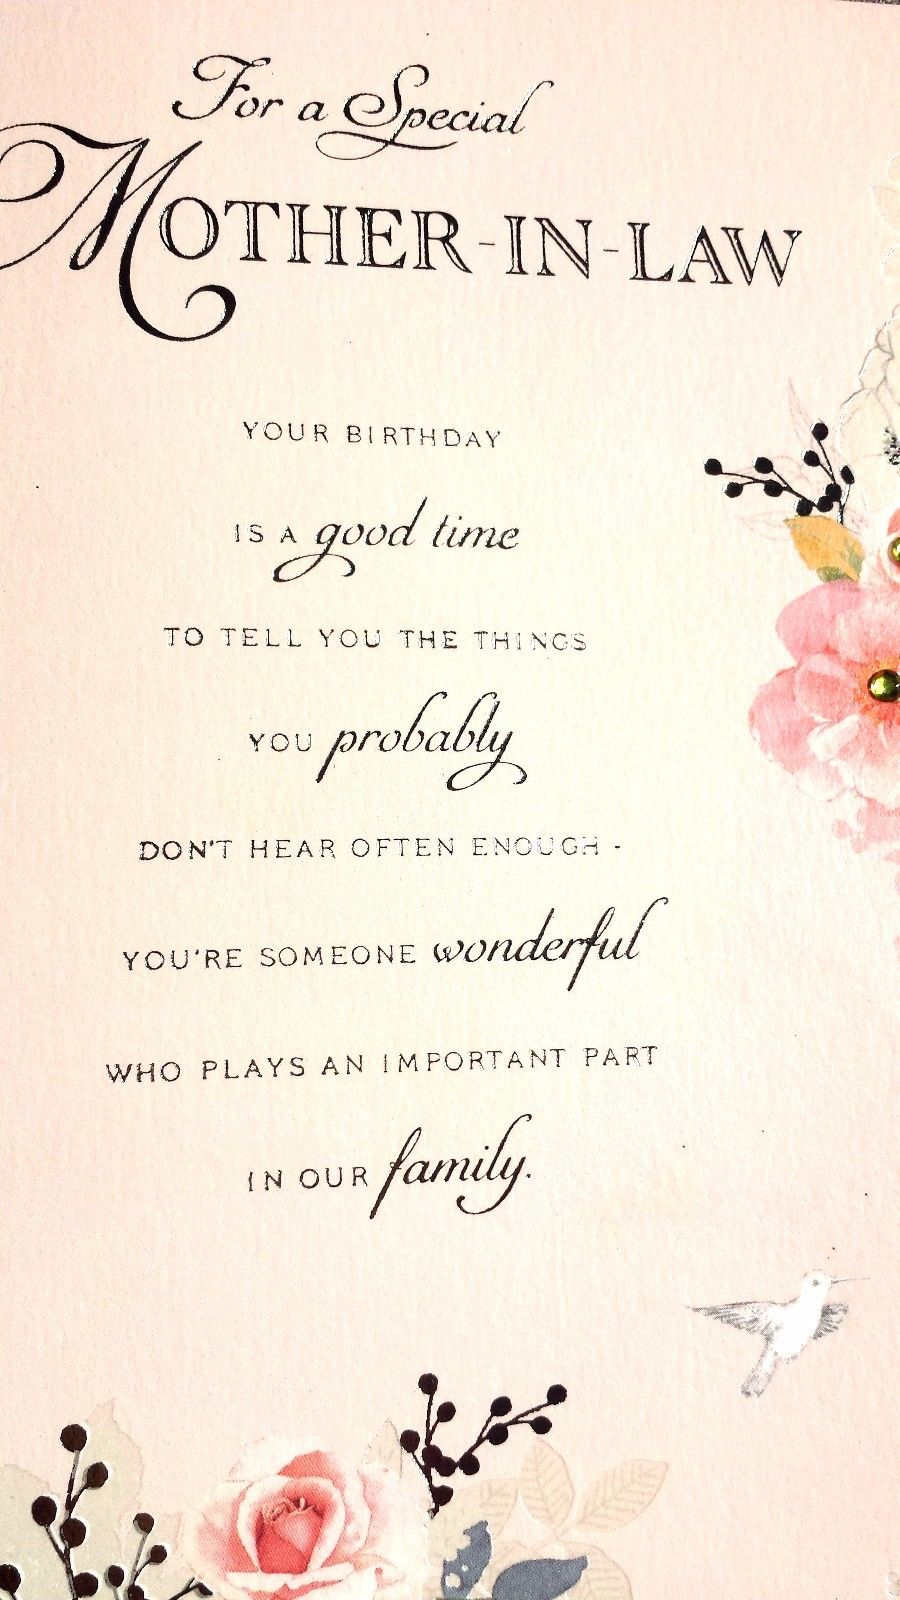 4 79 Gbp For A Special Mother In Law Lovely Design Happy Birthday Mil Gre Birthday Greetings For Mother Mother In Law Birthday Birthday Wishes For Mother